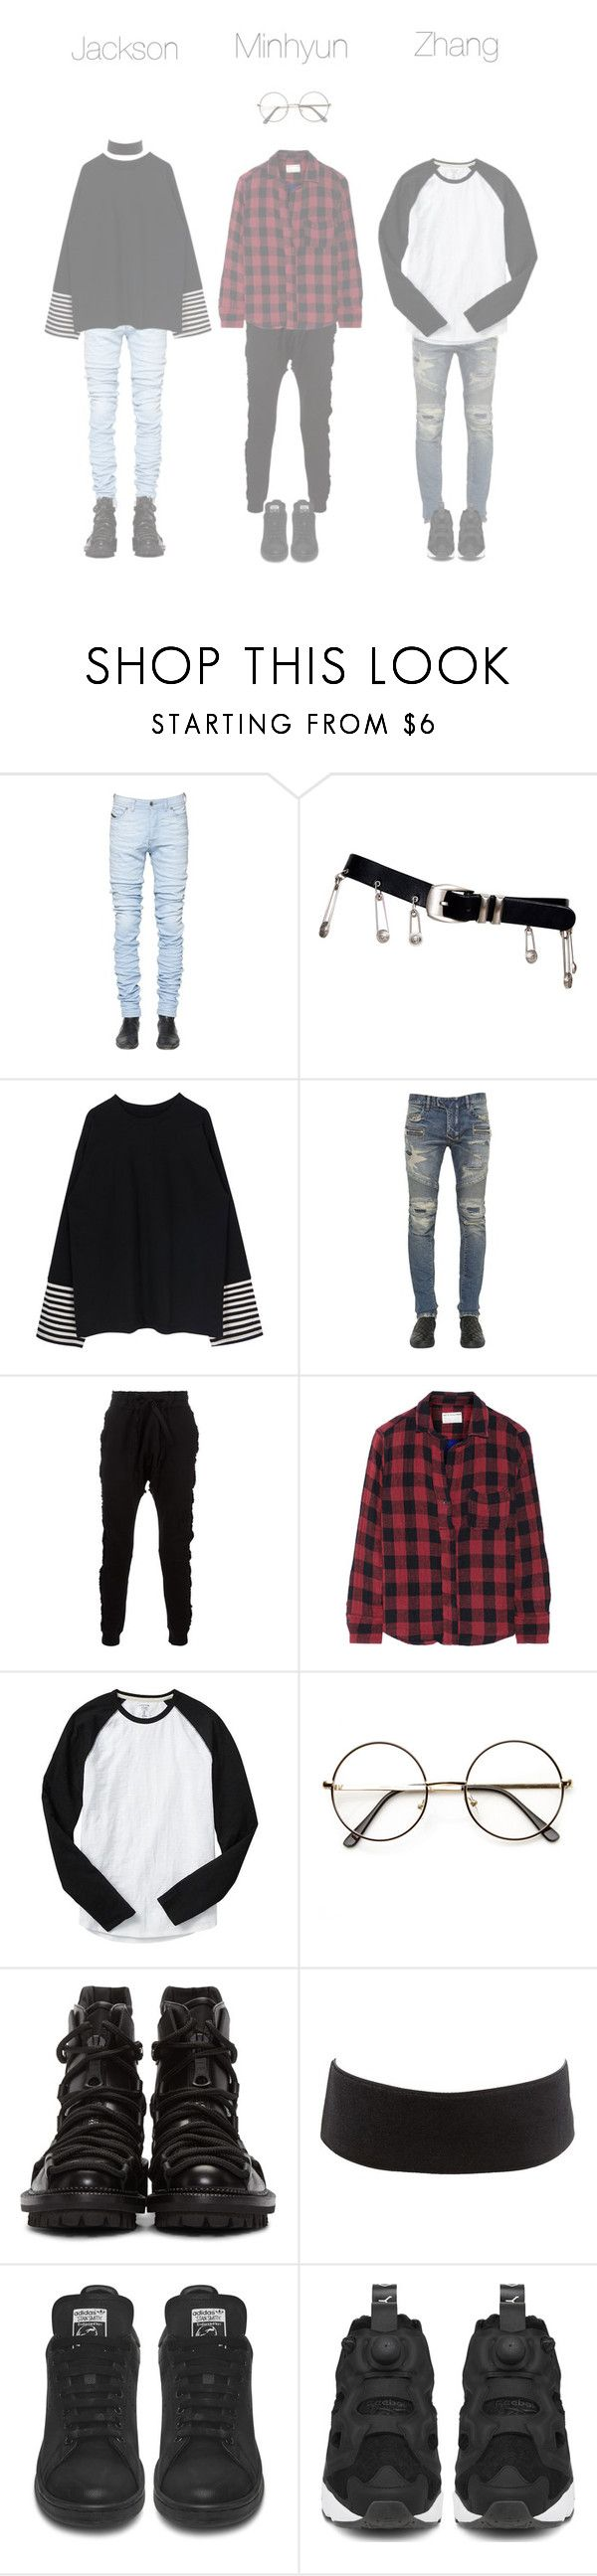 """""""Movie marathon with Nara"""" by offighter ❤ liked on Polyvore featuring Diesel Black Gold, Versace, Balmain, Blood Brother, rag & bone, Gap, ZeroUV, Dsquared2, Charlotte Russe and Reebok"""